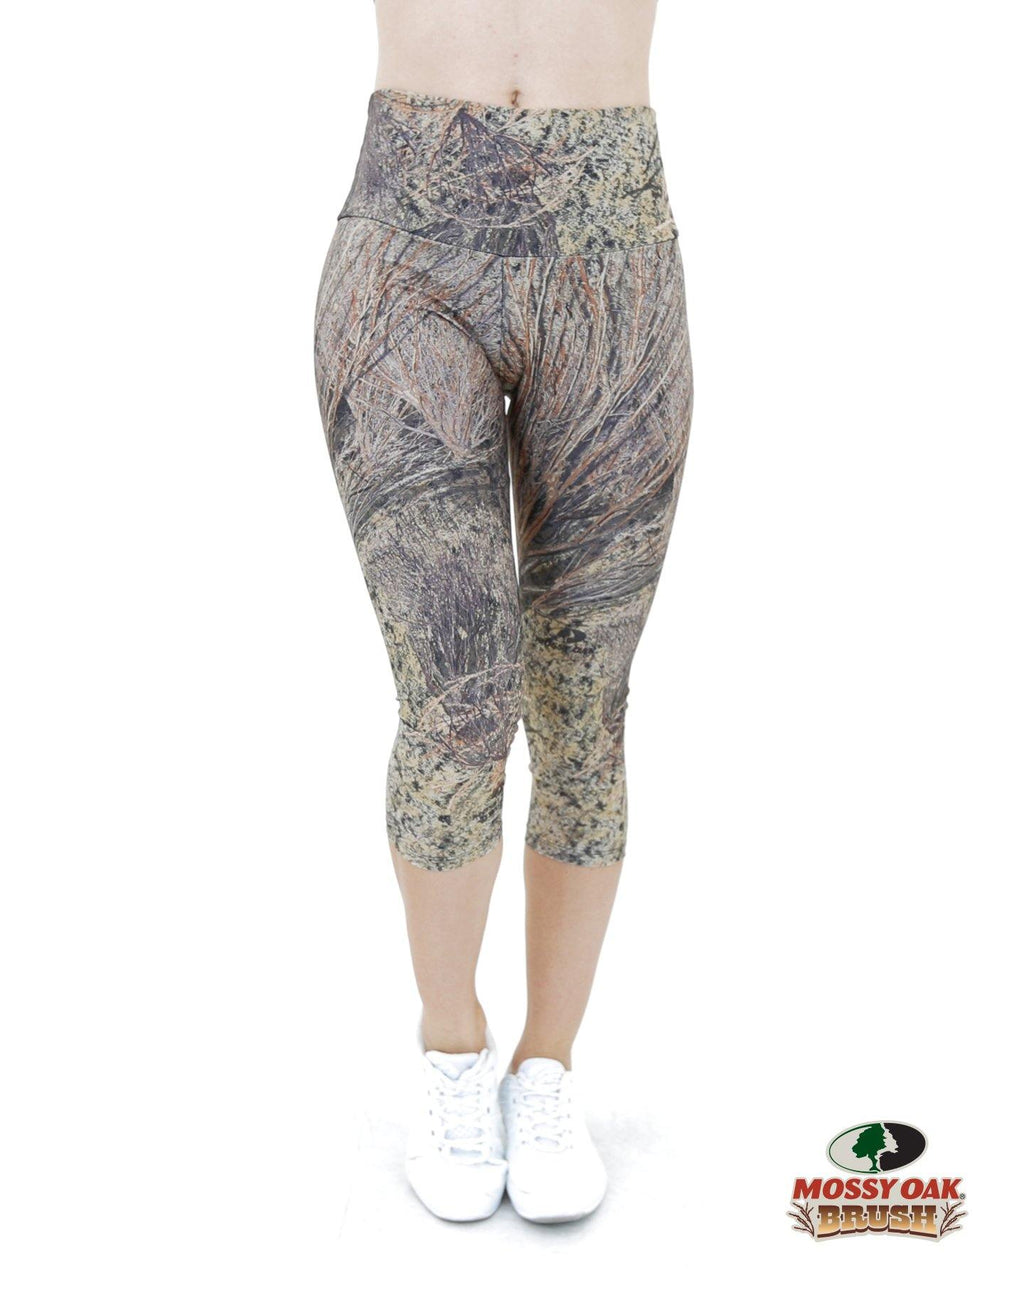 Apsara Leggings High Waist Capri, Mossy Oak Brush - Apsara Style